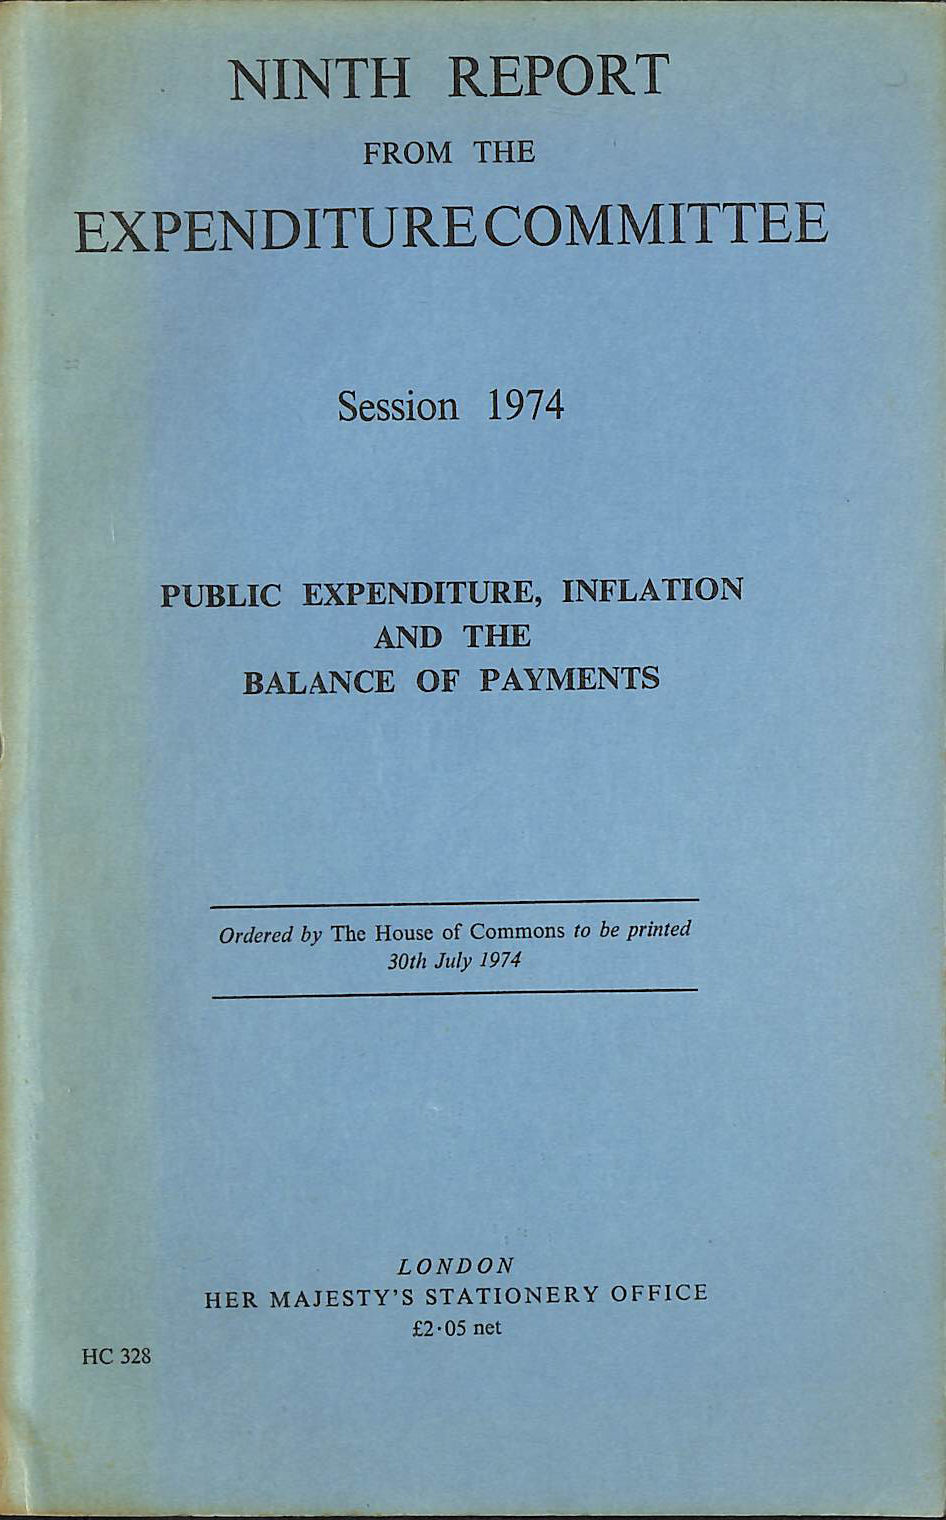 Image for Public expenditure, inflation and the balance of payments: Ninth report from the Expenditure Committee, session 1974 (1974 H.C.328)